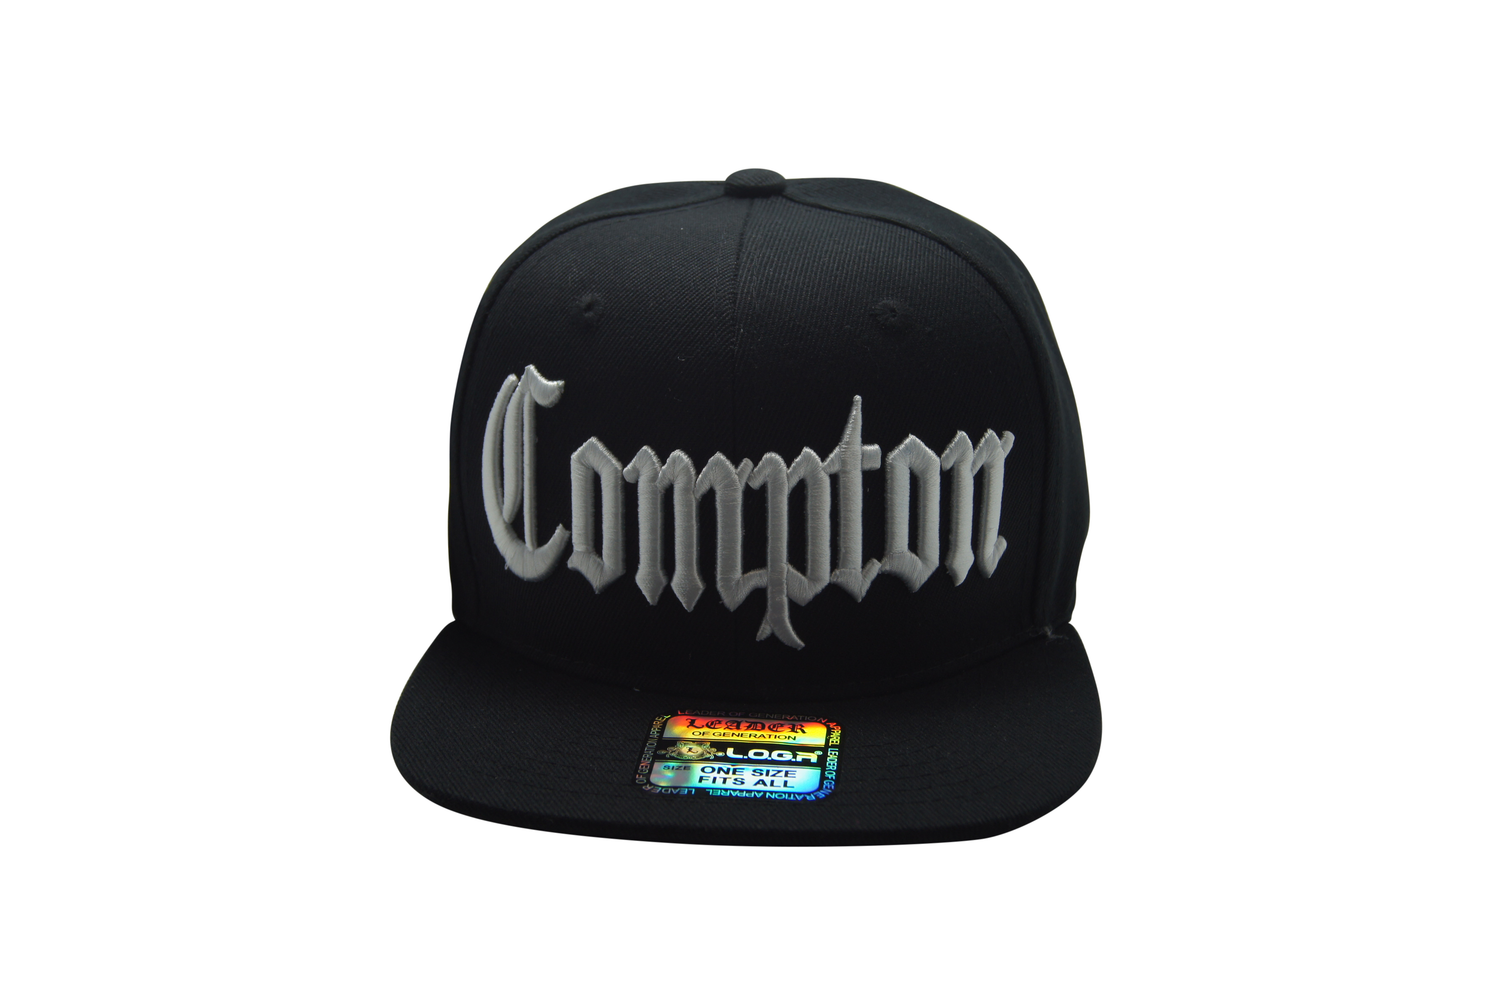 Flat Bill Compton 3D Embroidery Black